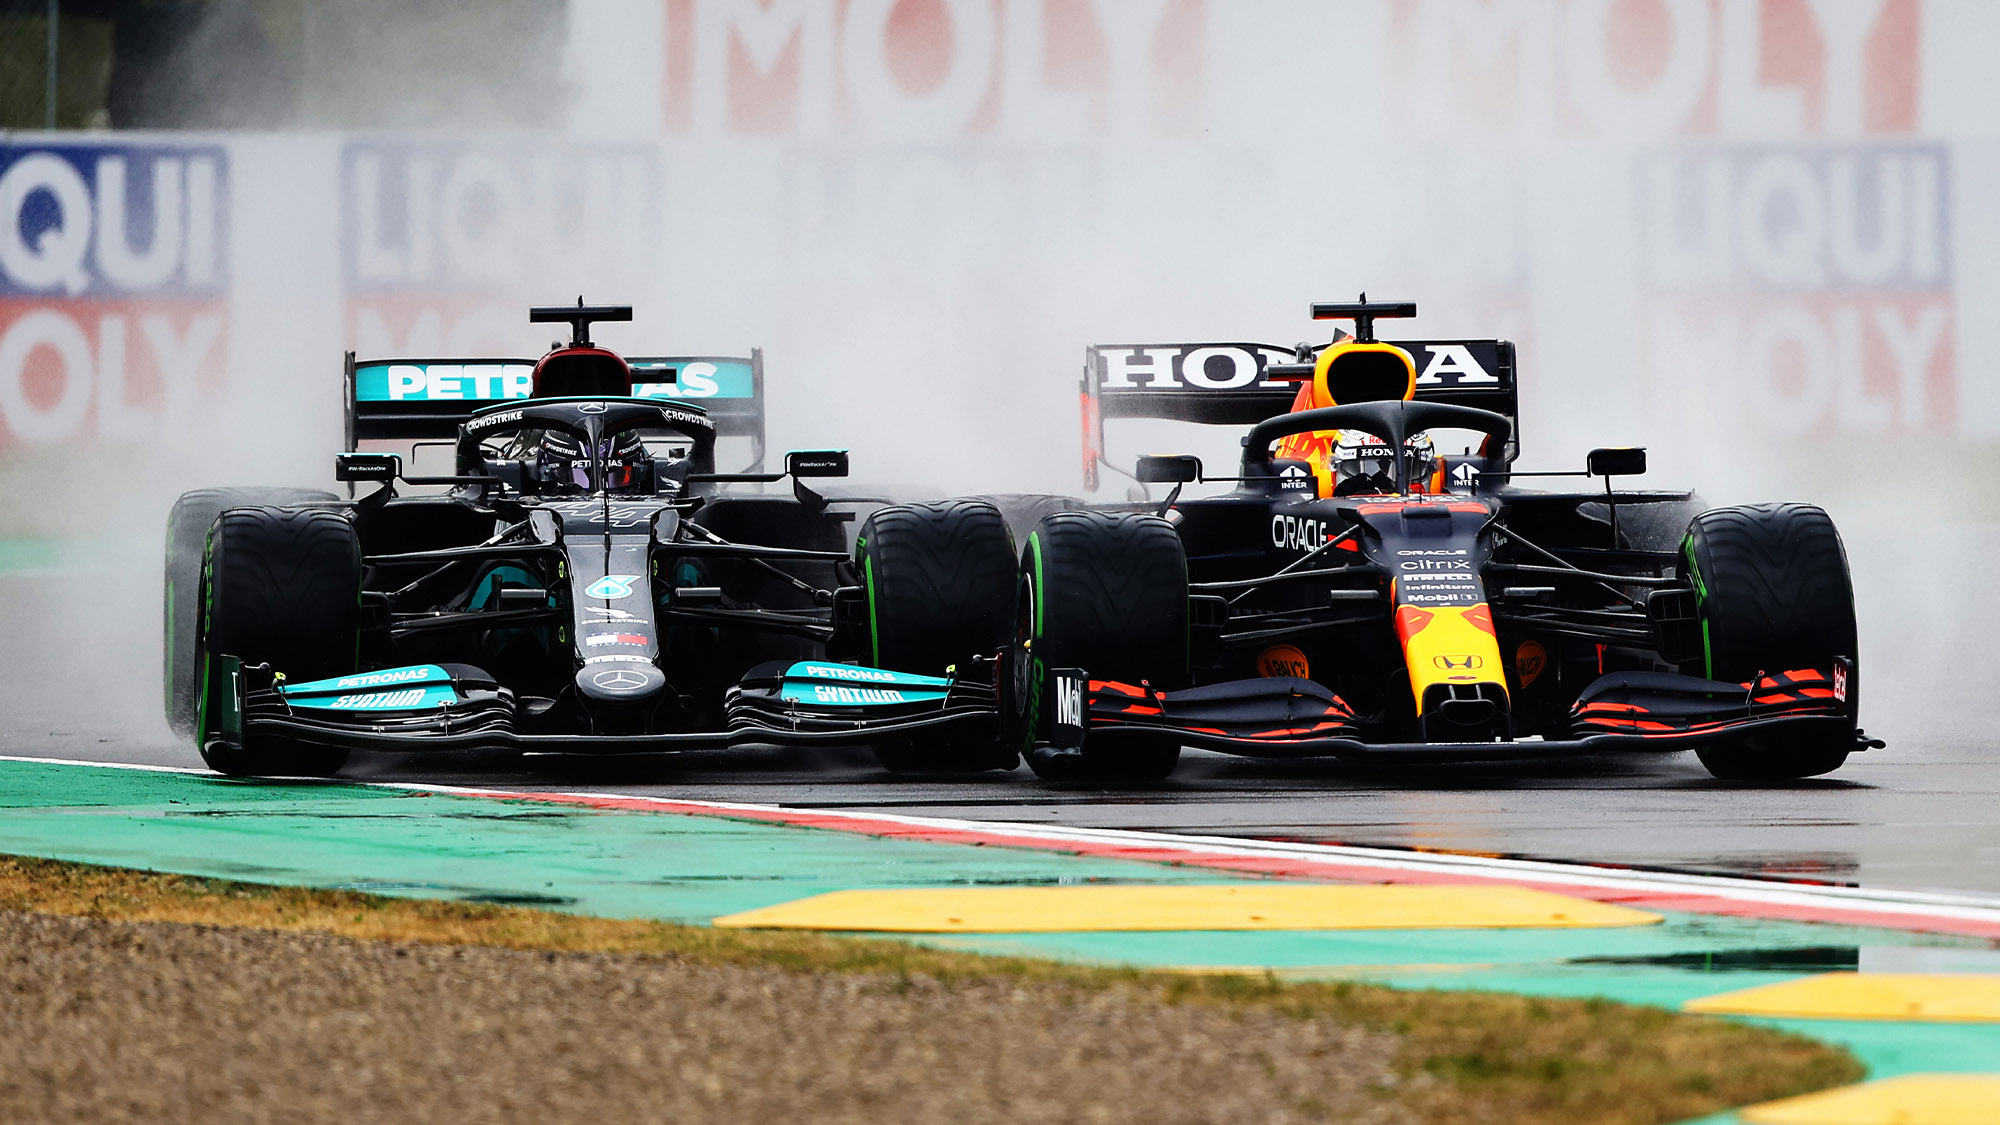 Max Verstappen pushed Lewis Hamilton onto the kerb at the start of the 2021 Emilia Romagna Grand Prix